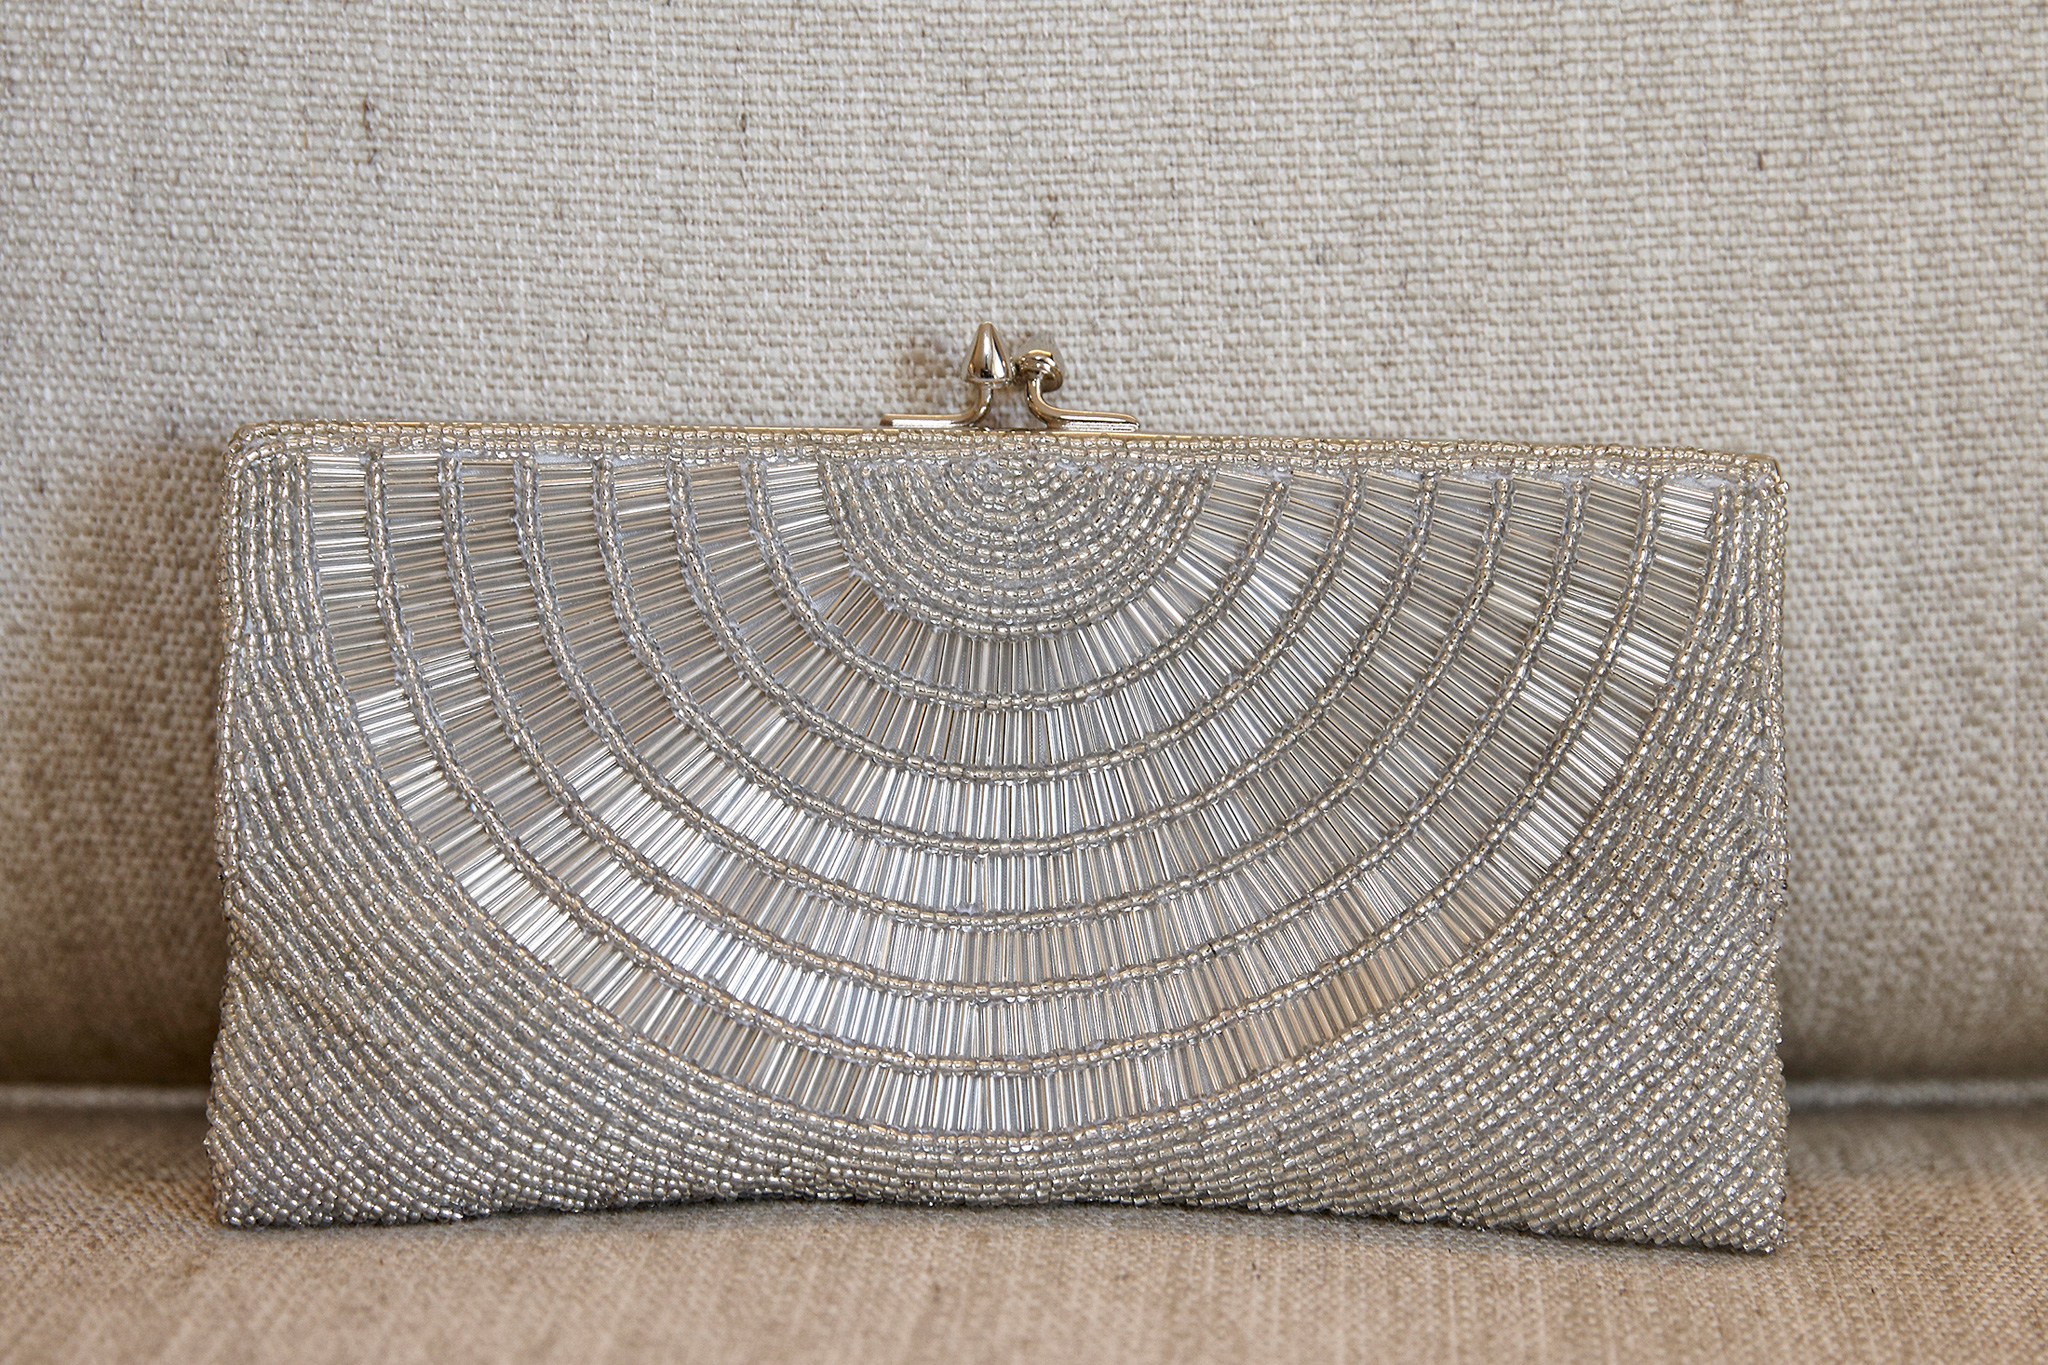 b2024f4648 Wedding Accessories: Small Clutch Purses and Bags for the Bride ...